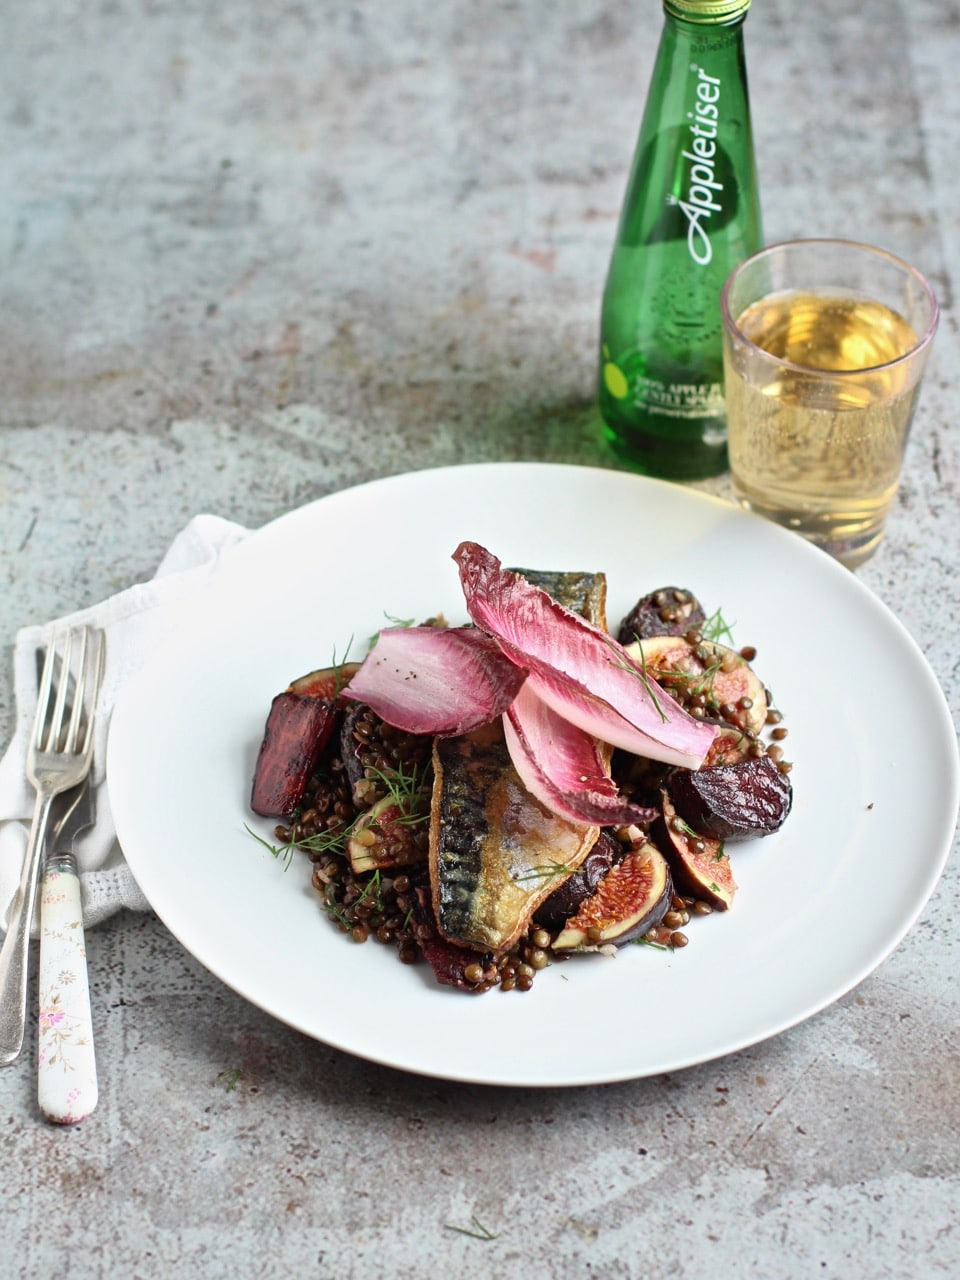 Pan-fried Mackerel with Warm Lentil, Beetroot and Figs